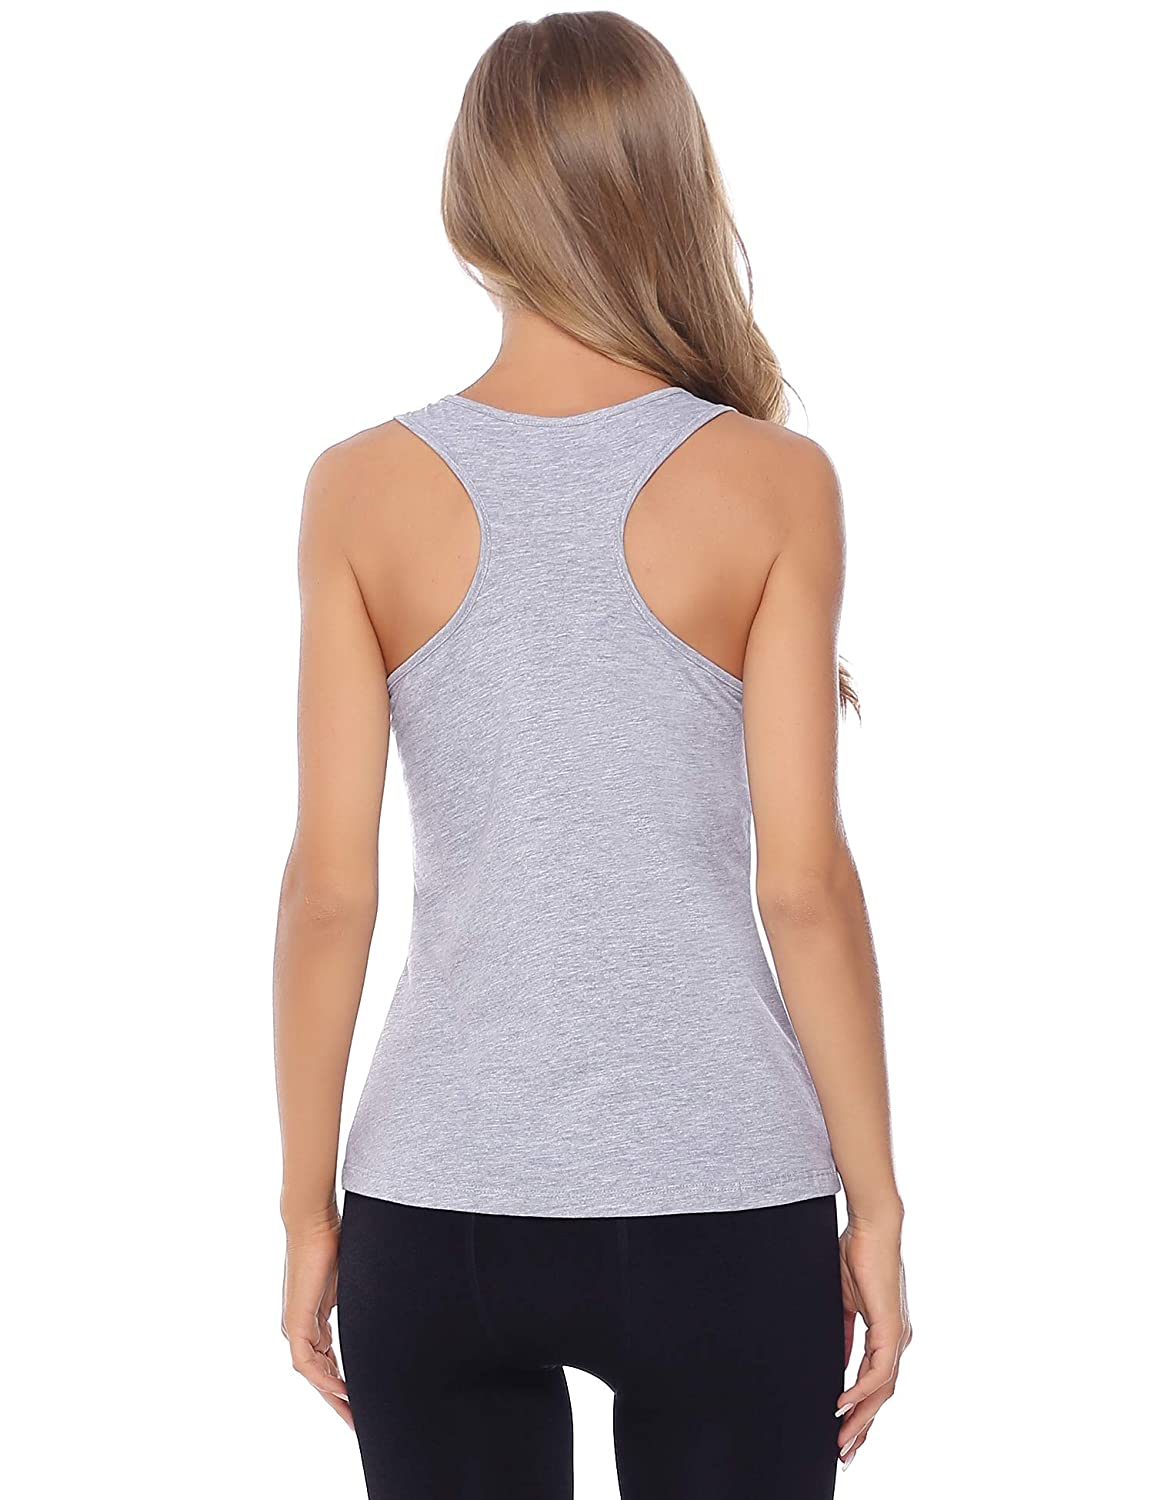 Hawiton 2 Packs Ladies Knit Tank Vest Top 100/% Cotton Loose Fit Relaxed Flowy for Women and Juniors-2 pcs